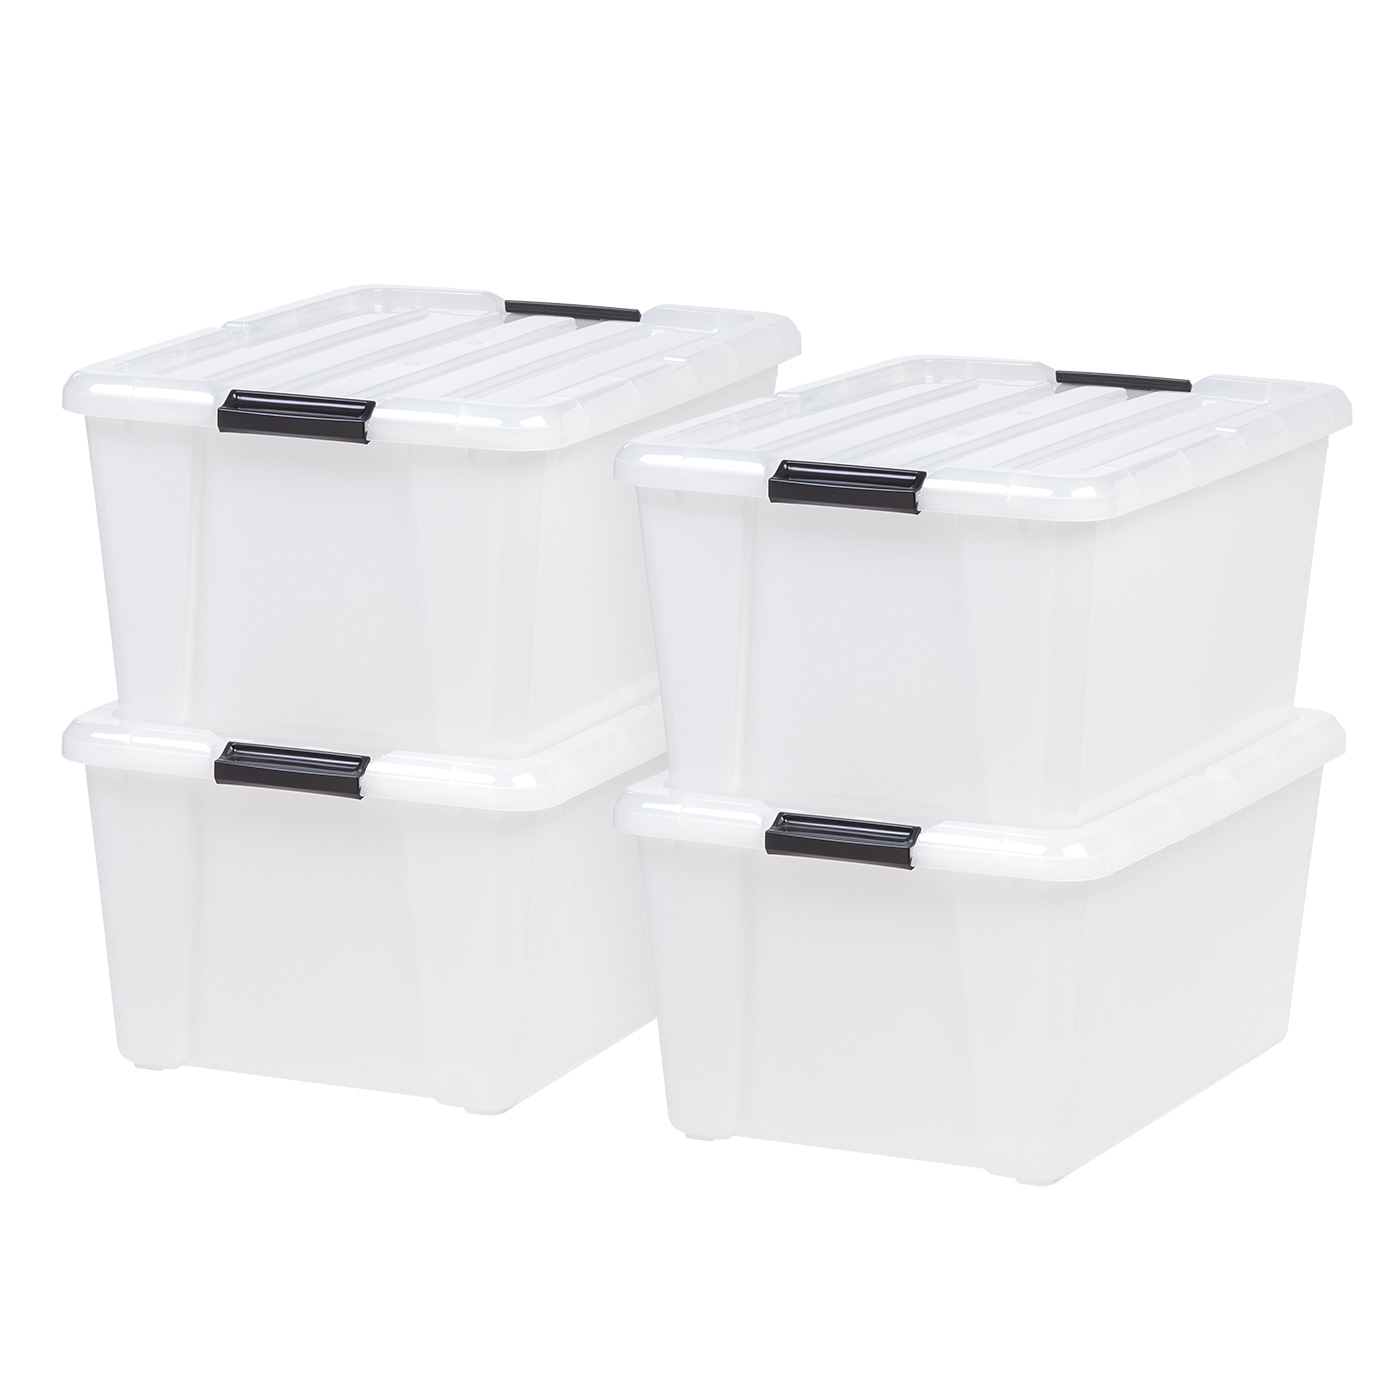 Storage Memory Card Gift Jewellery Boxes Set of 4 stacking Storage Boxes